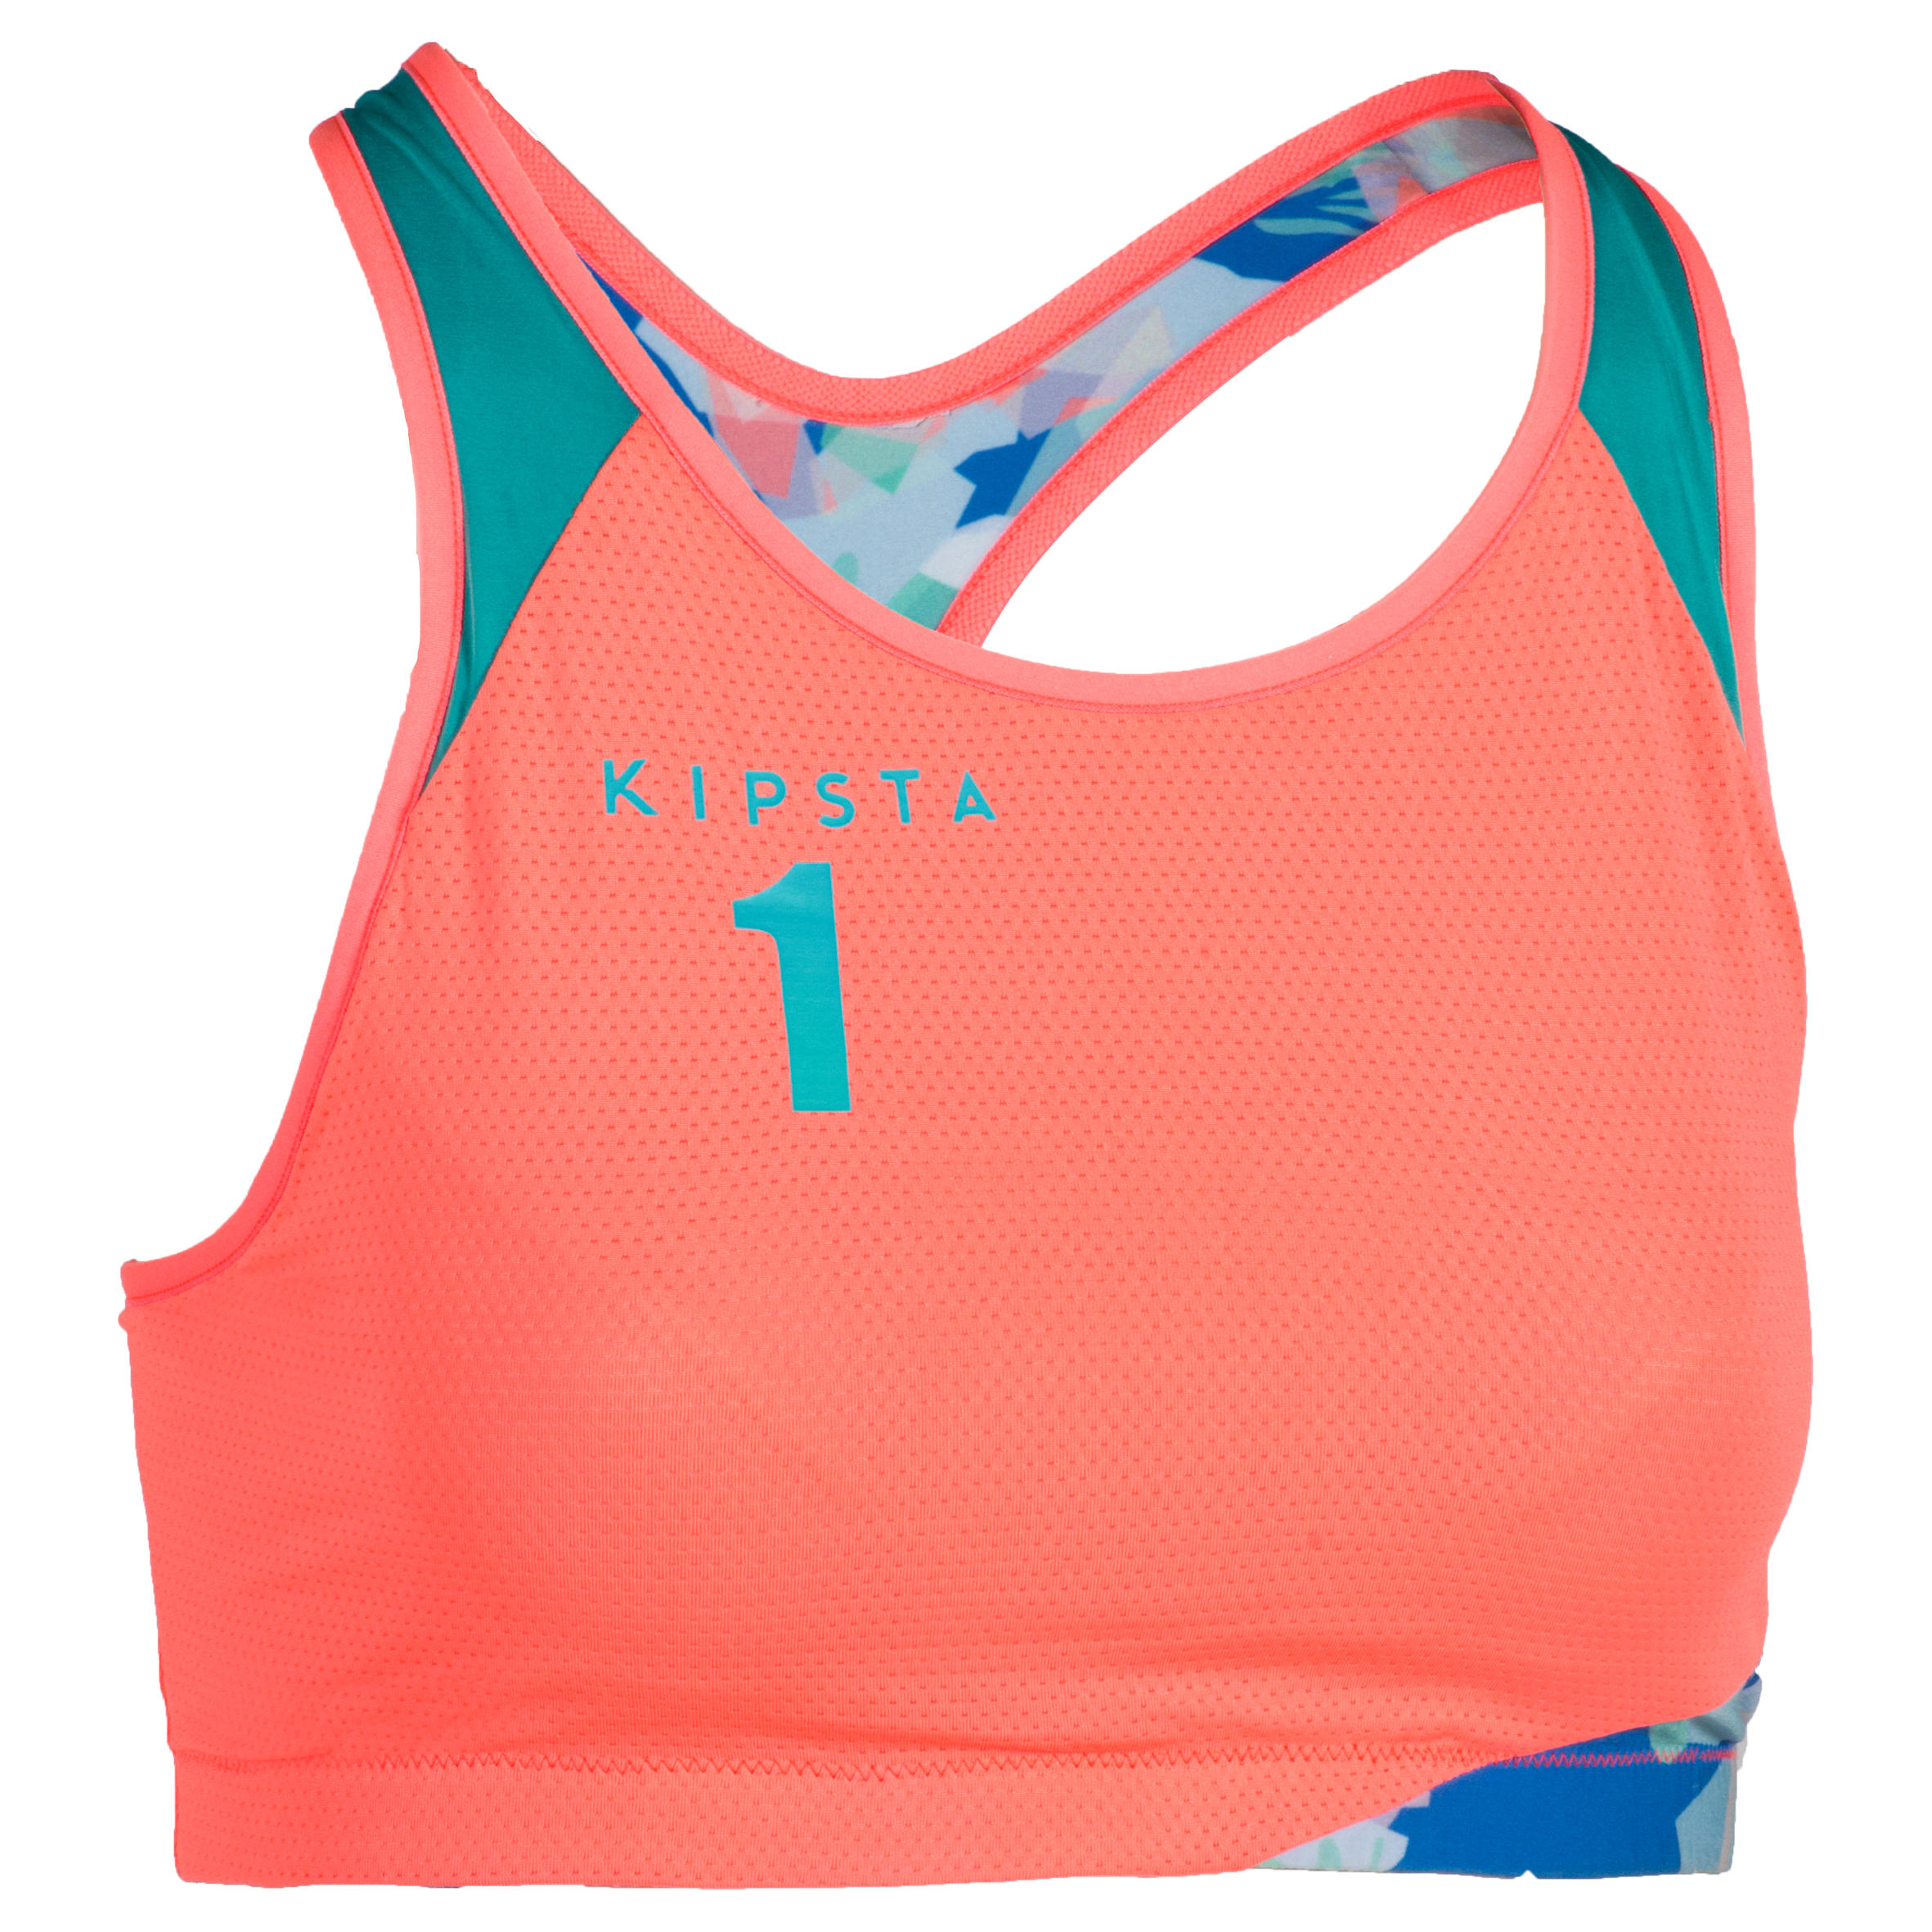 Soutien-gorge de volleyball de plage VP 500 orange